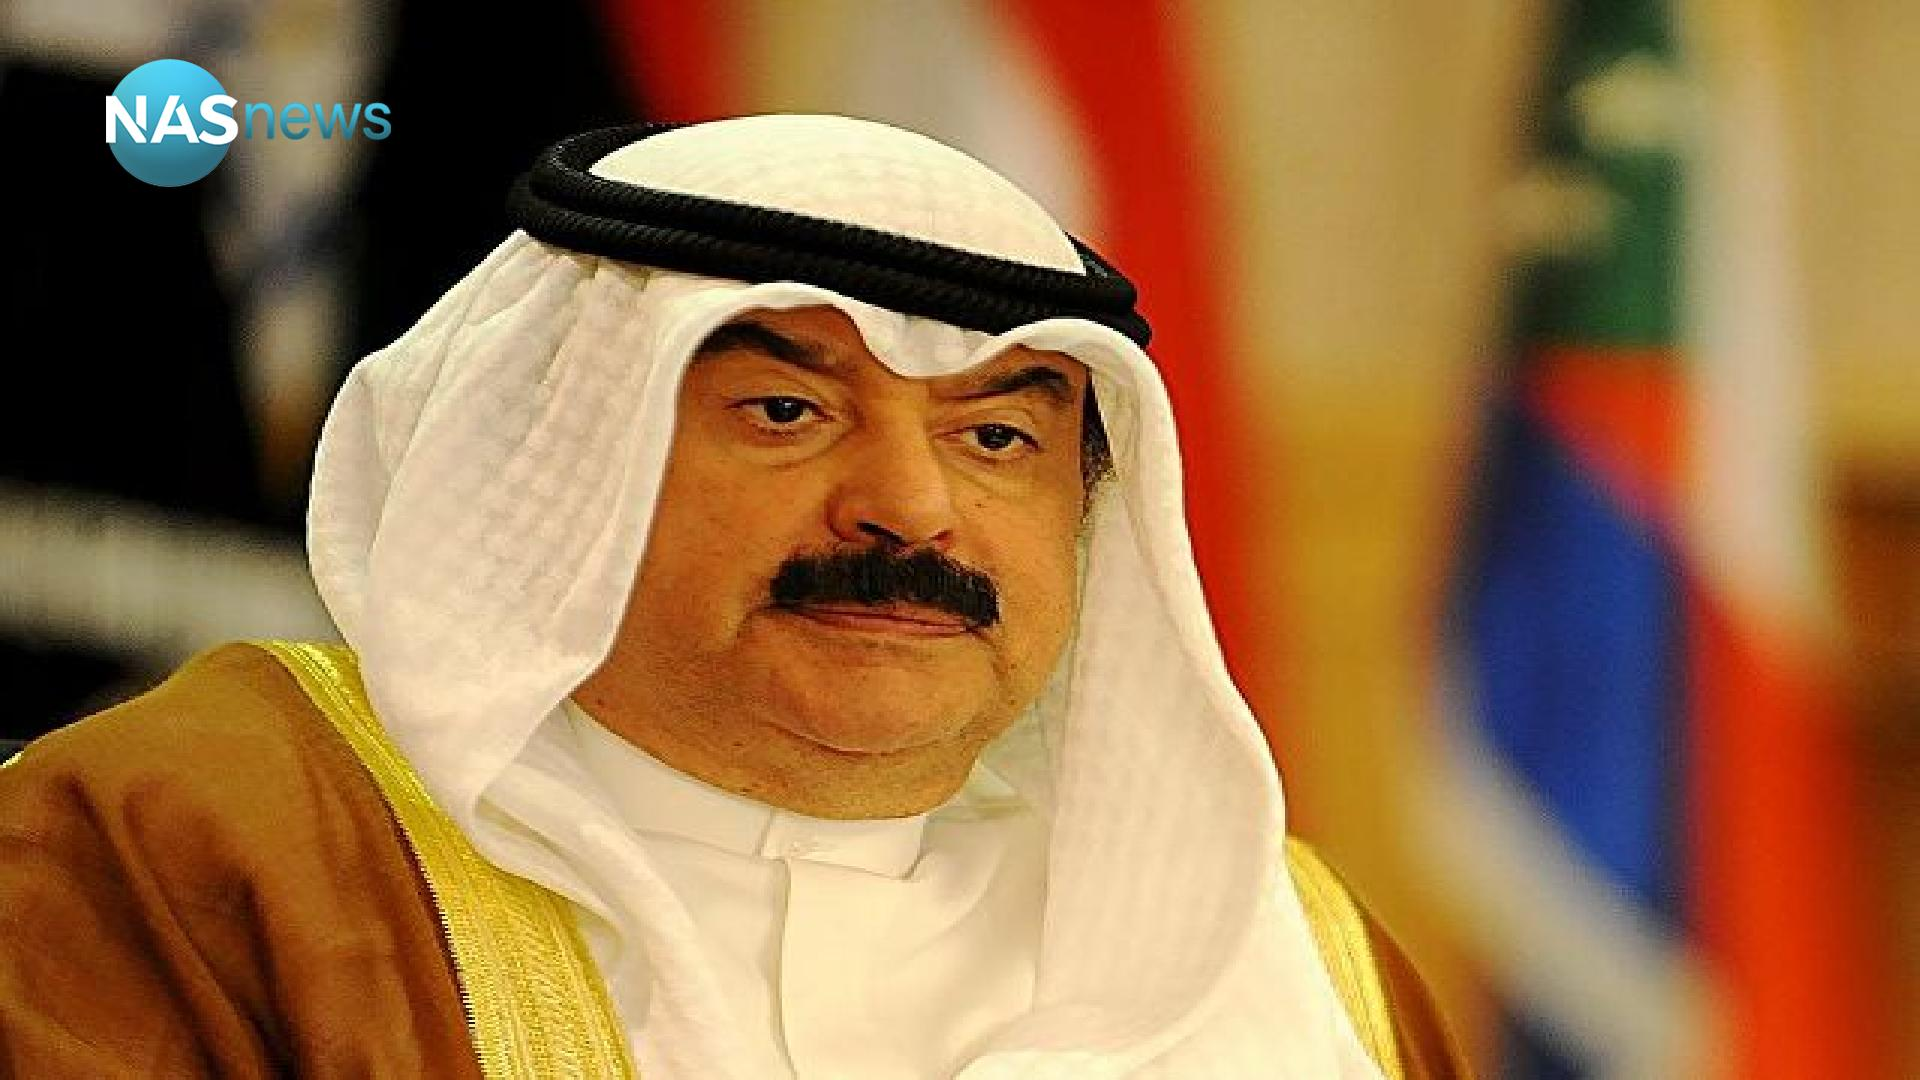 Kuwait announces reaching an agreement that ends the Gulf dispute under the auspices of the United States and Kuwait F47657fd7-46775-202012040642